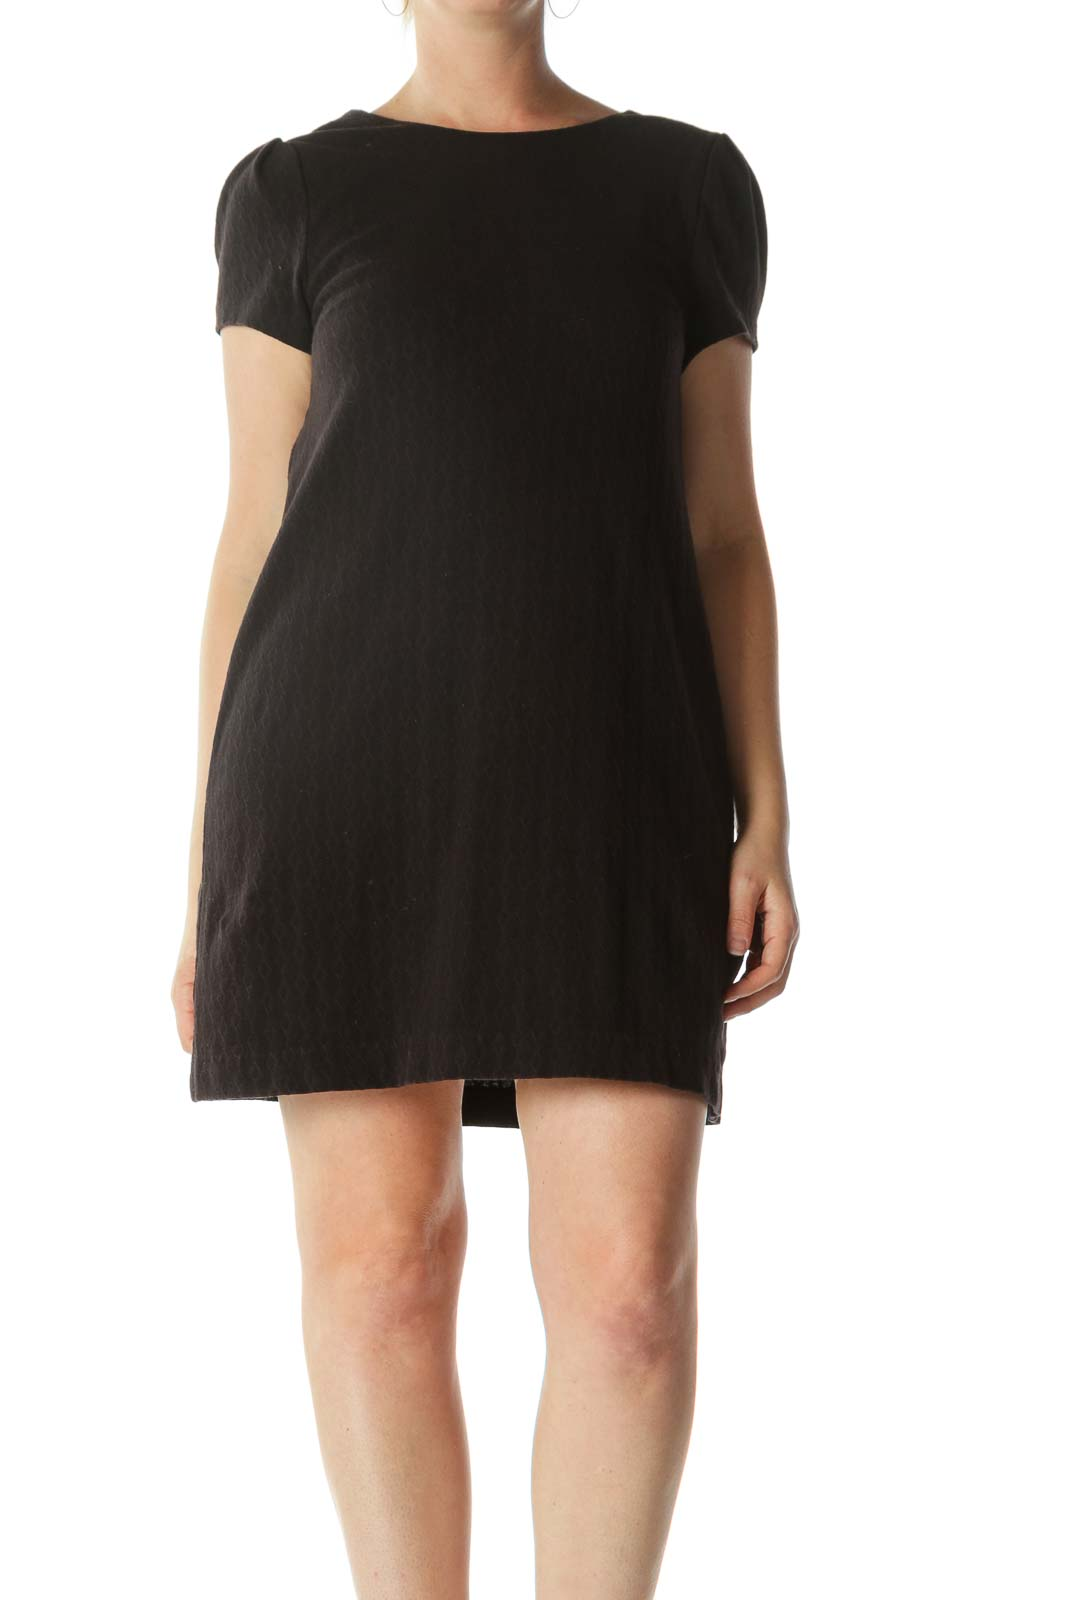 Black Textured Short-Sleeve Knit Dress